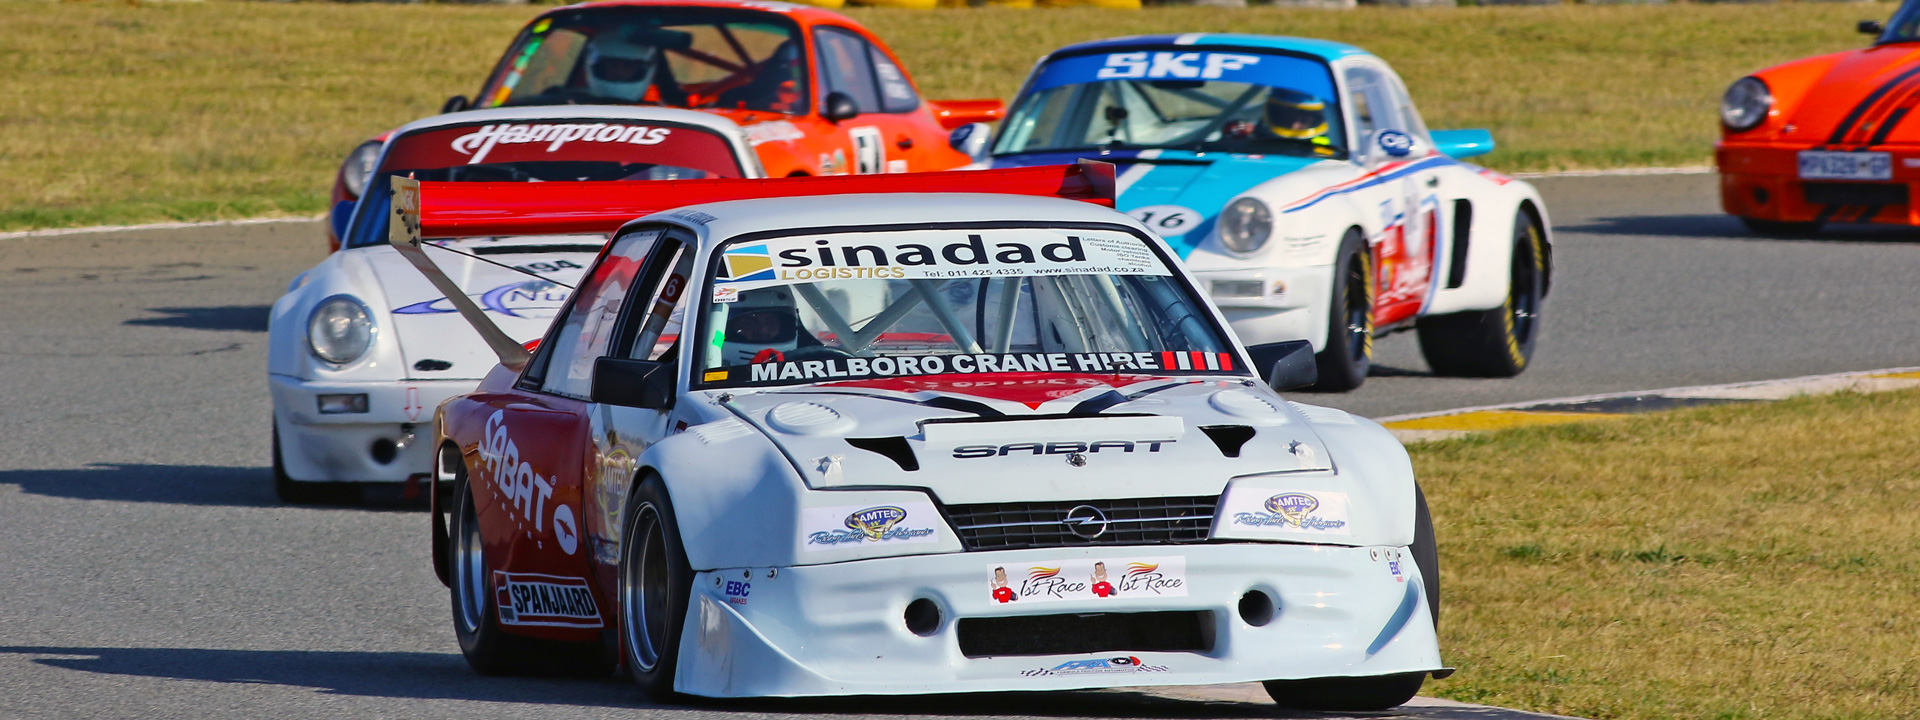 Historic Racing - Round 2 - 29 April 2017 - Phakisa Freeway